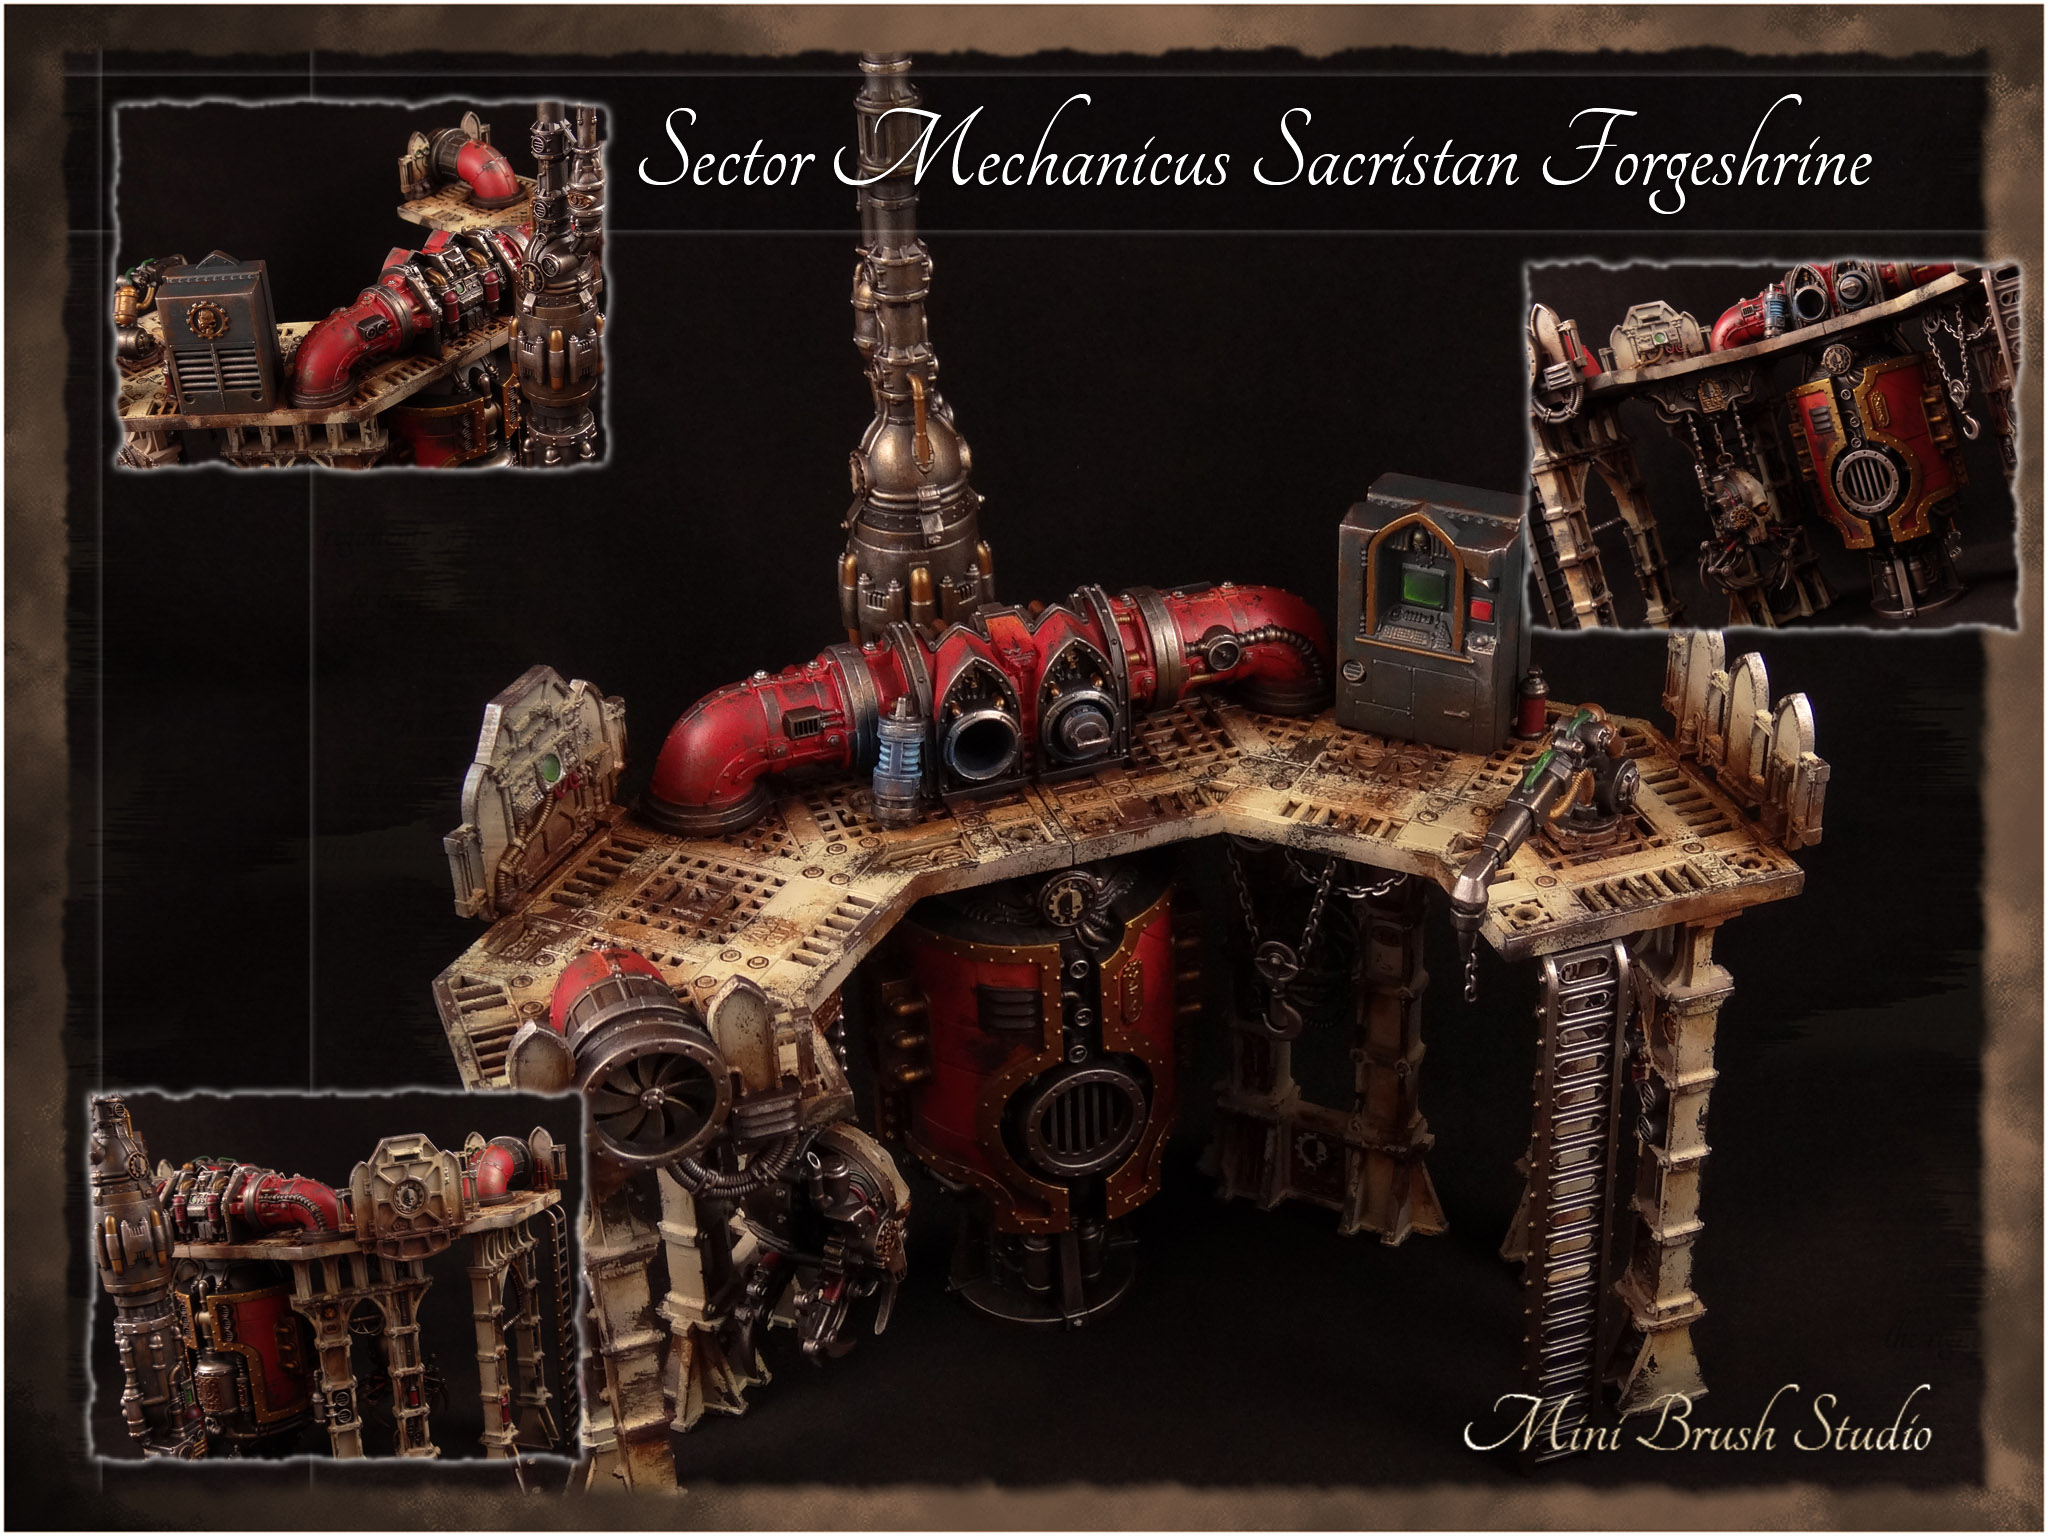 Sector Mechanicus Sacristan Forgeshrine 1 v7.00.jpg